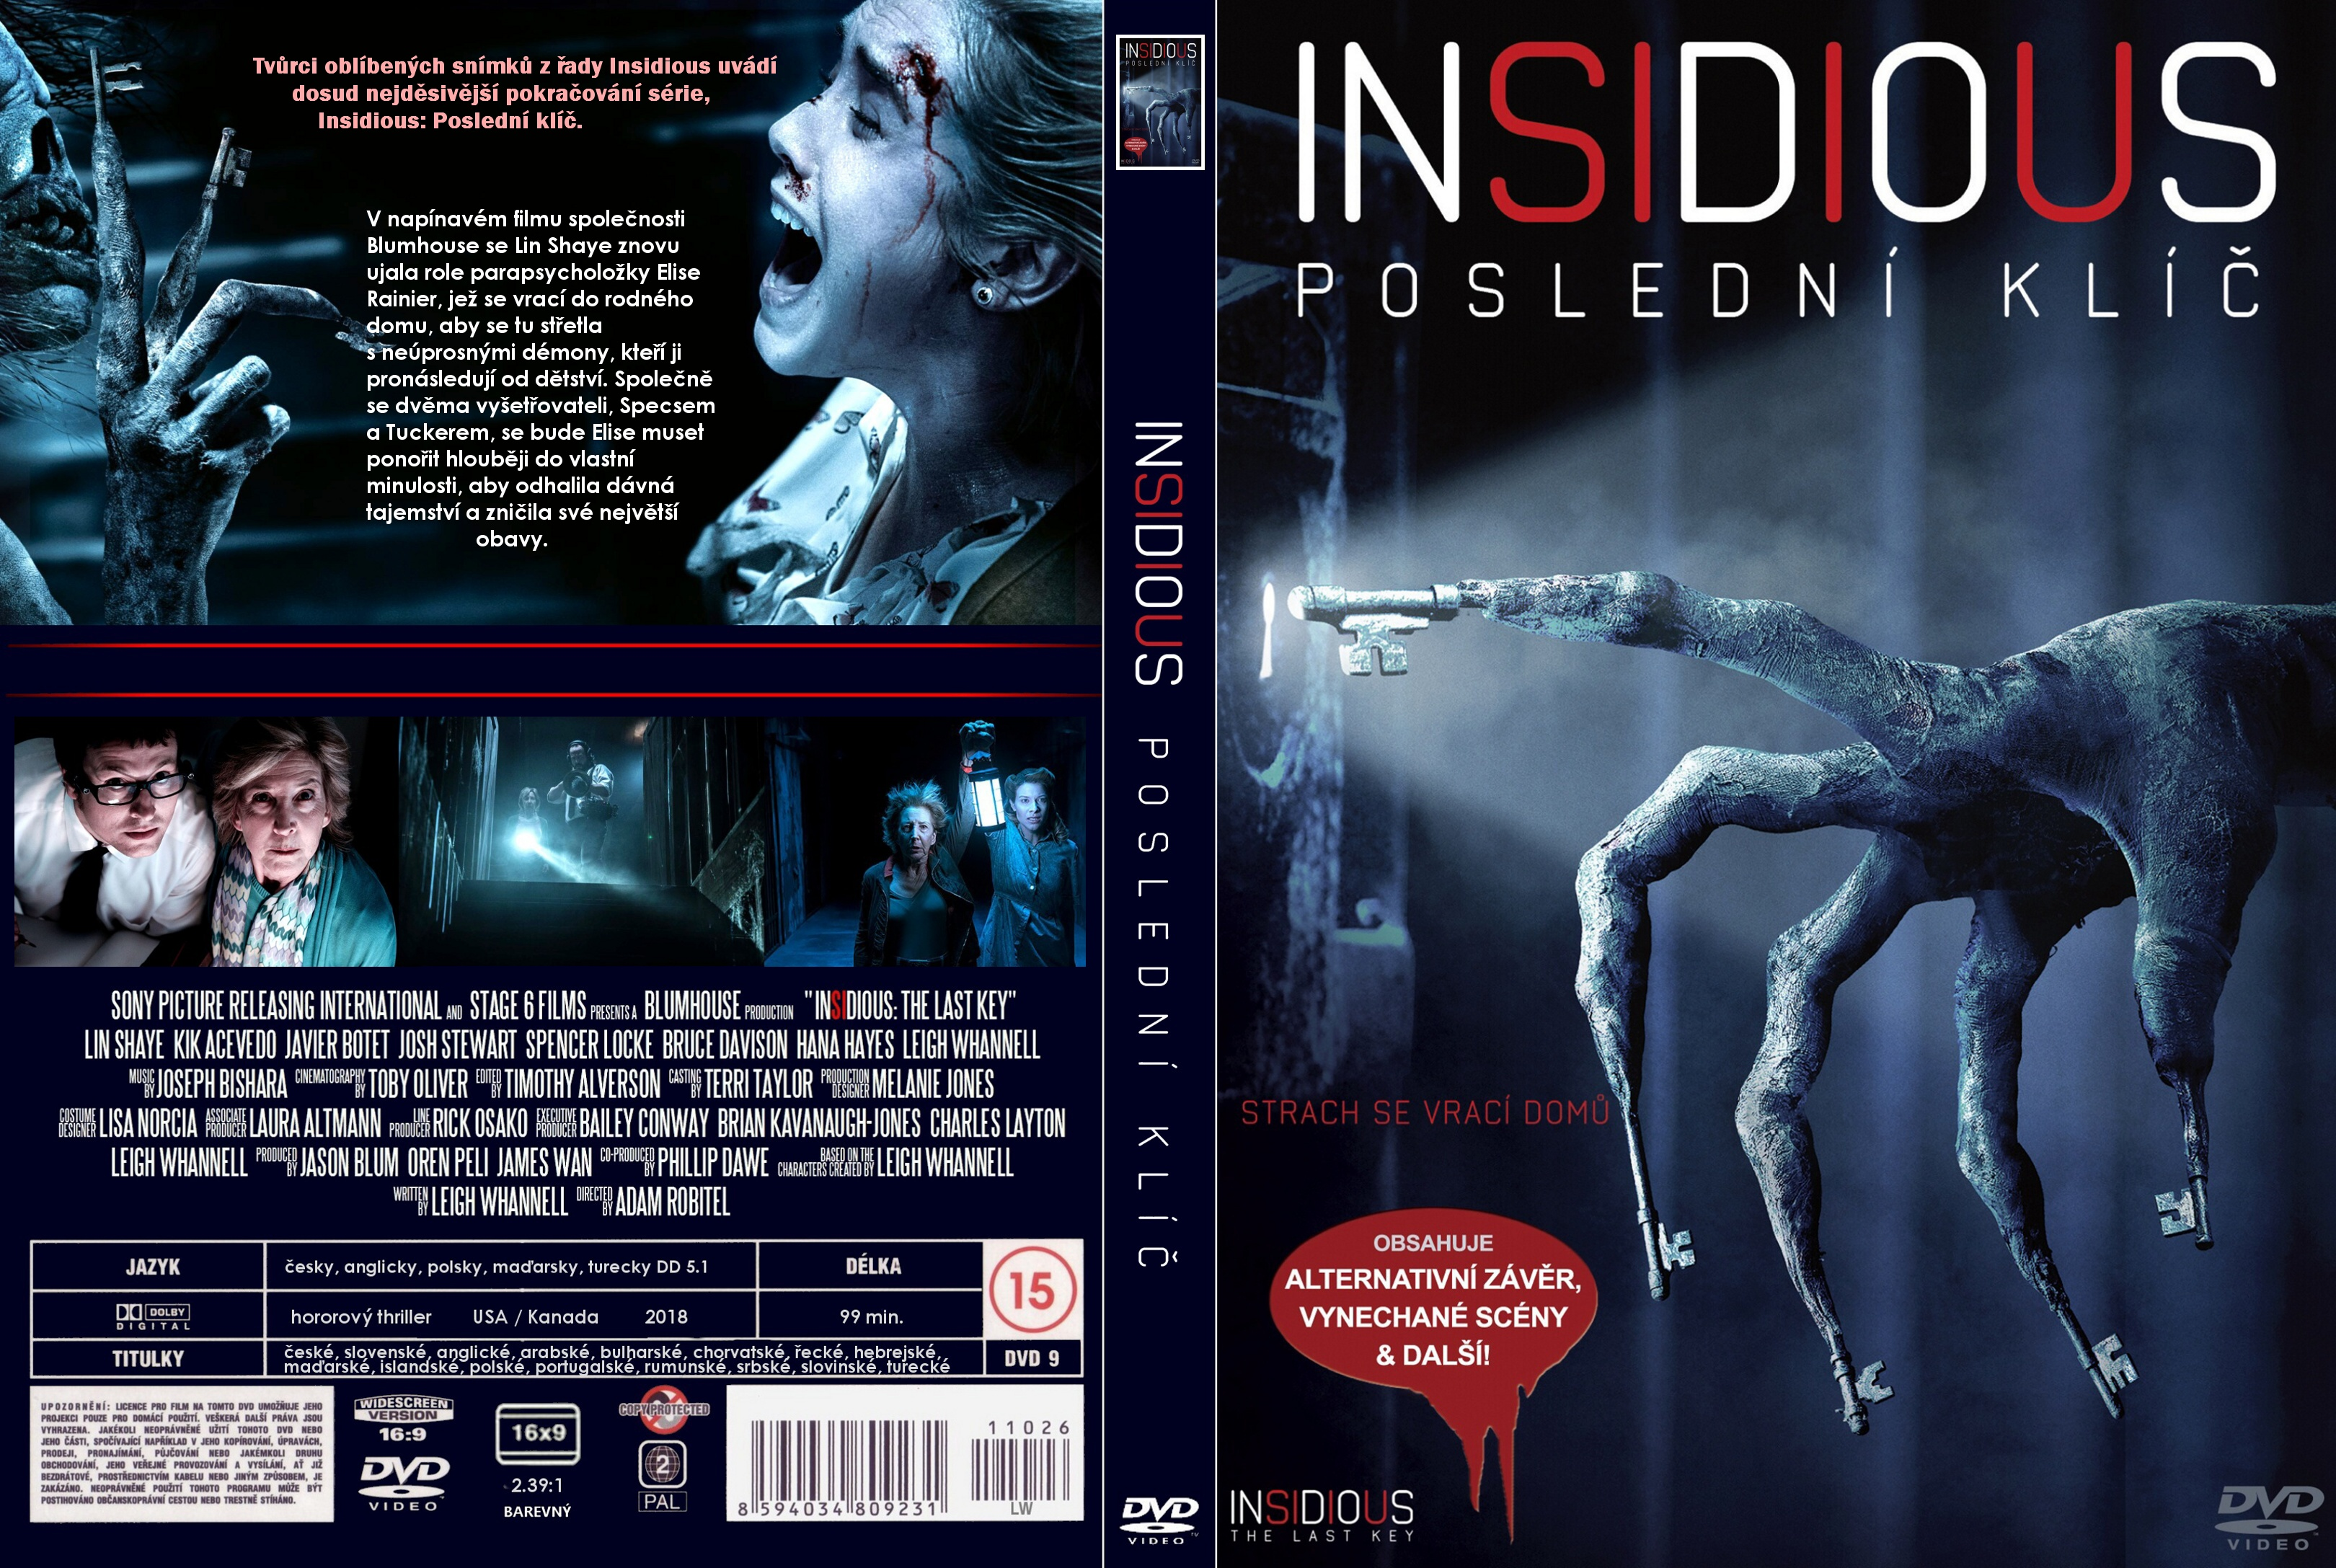 insidious movie download hd free